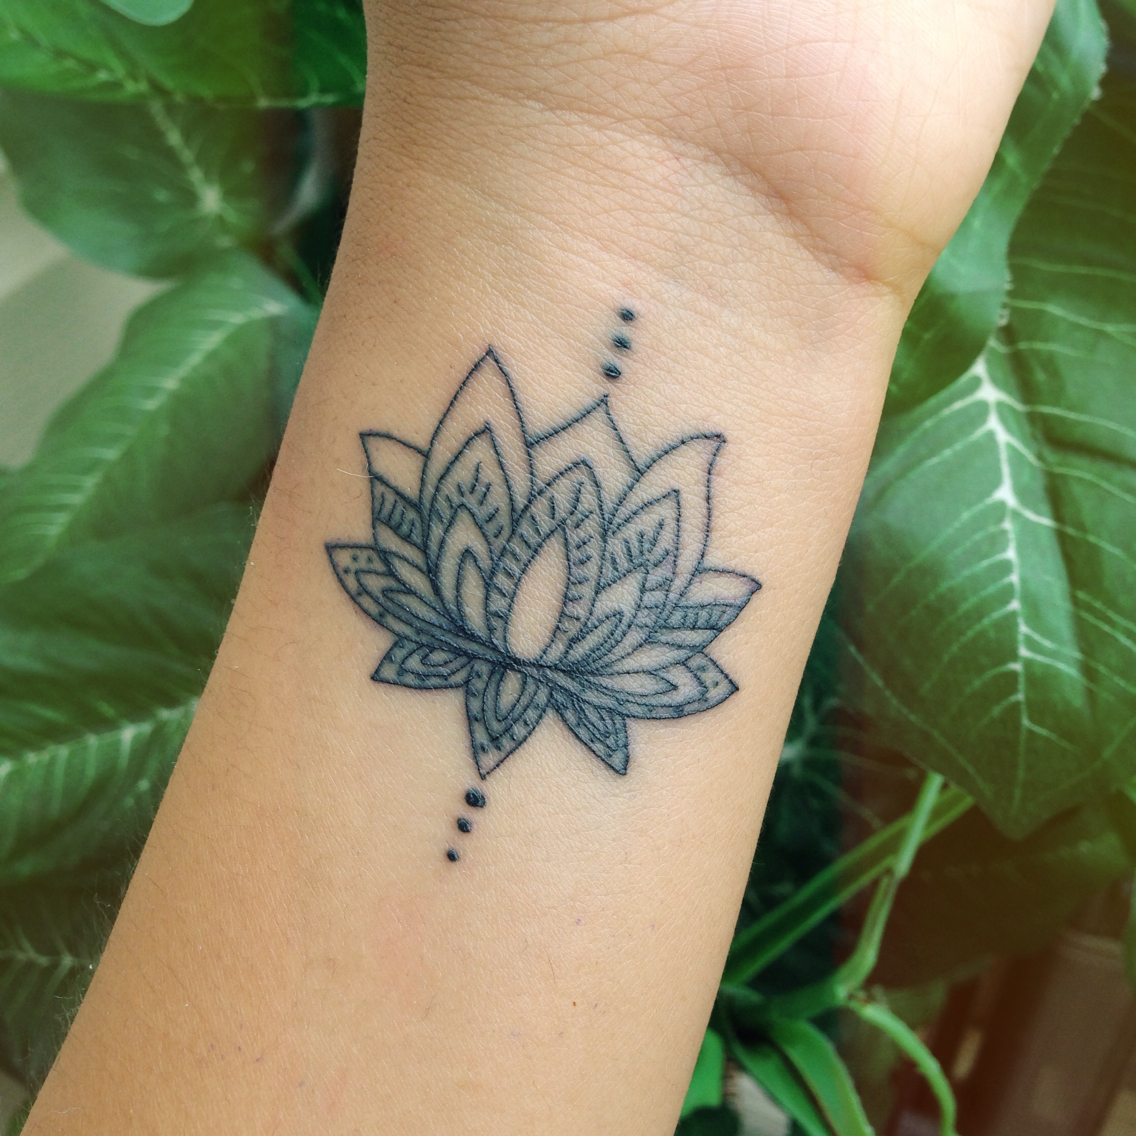 Incredible Realistic Lotus Flower With Small Heart And Musical Note